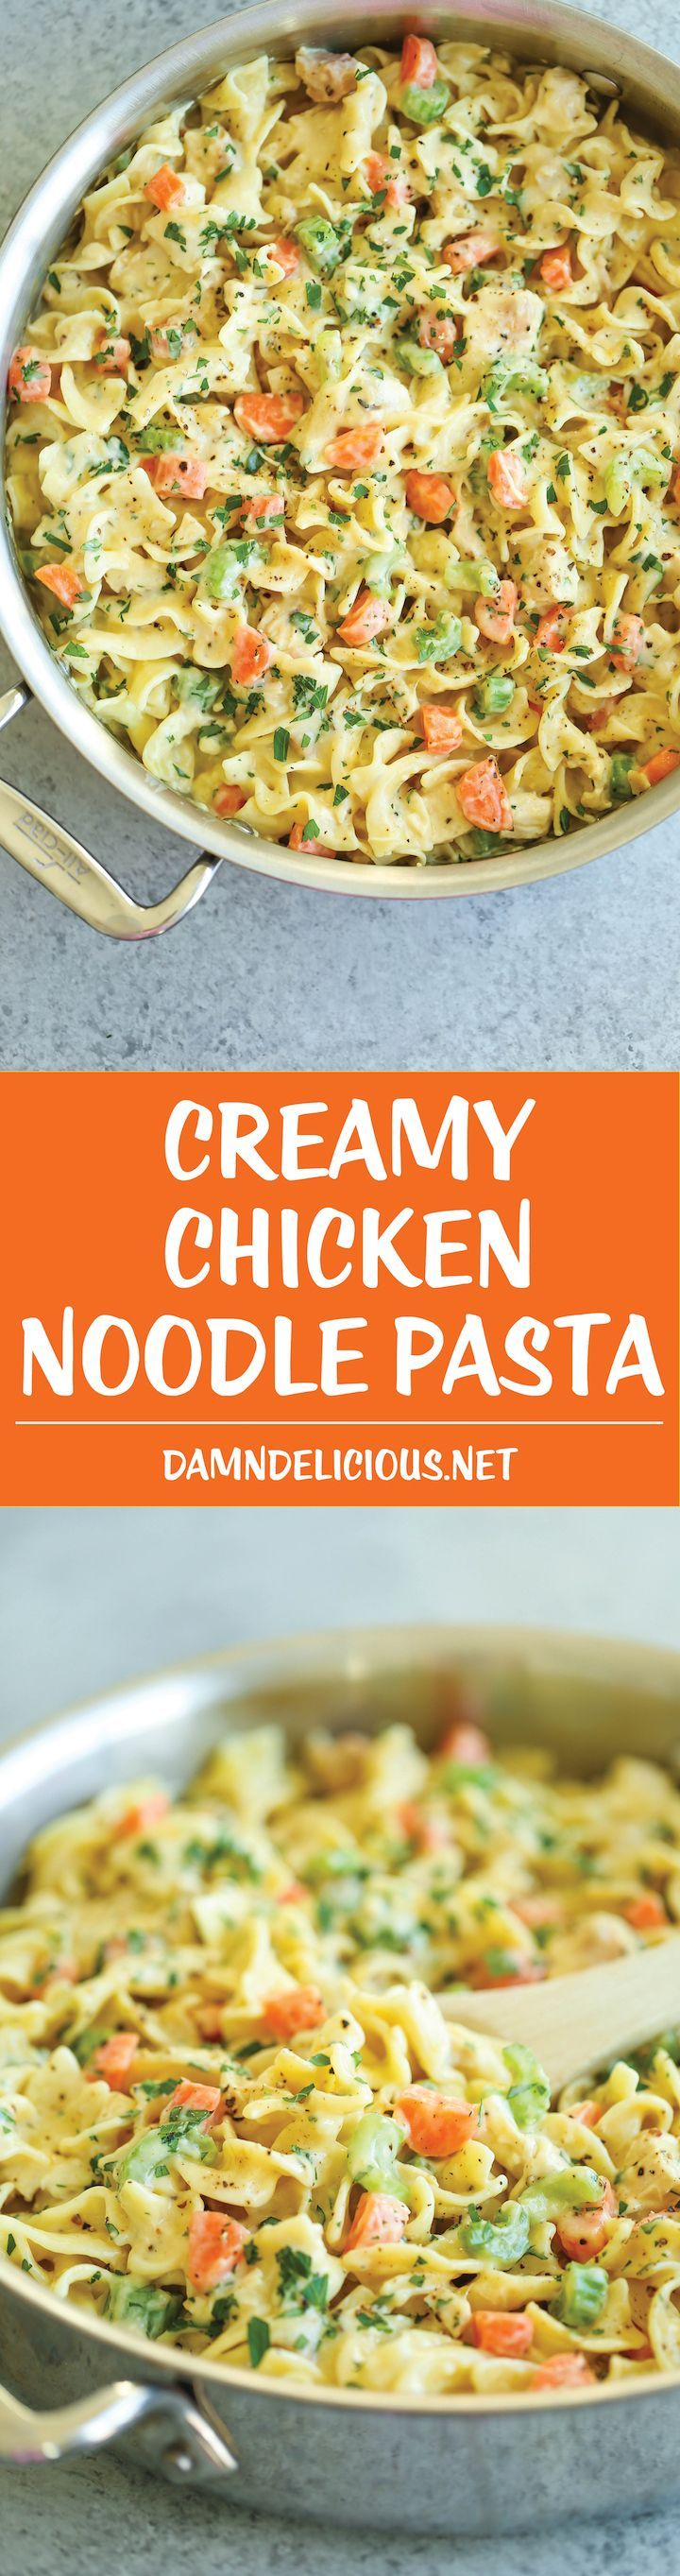 Creamy Chicken Noodle Pasta - This is like everyone's favorite chicken noodle soup except in creamy, melt-in-your-mouth pasta form! It's seriously AMAZING. #Pasta